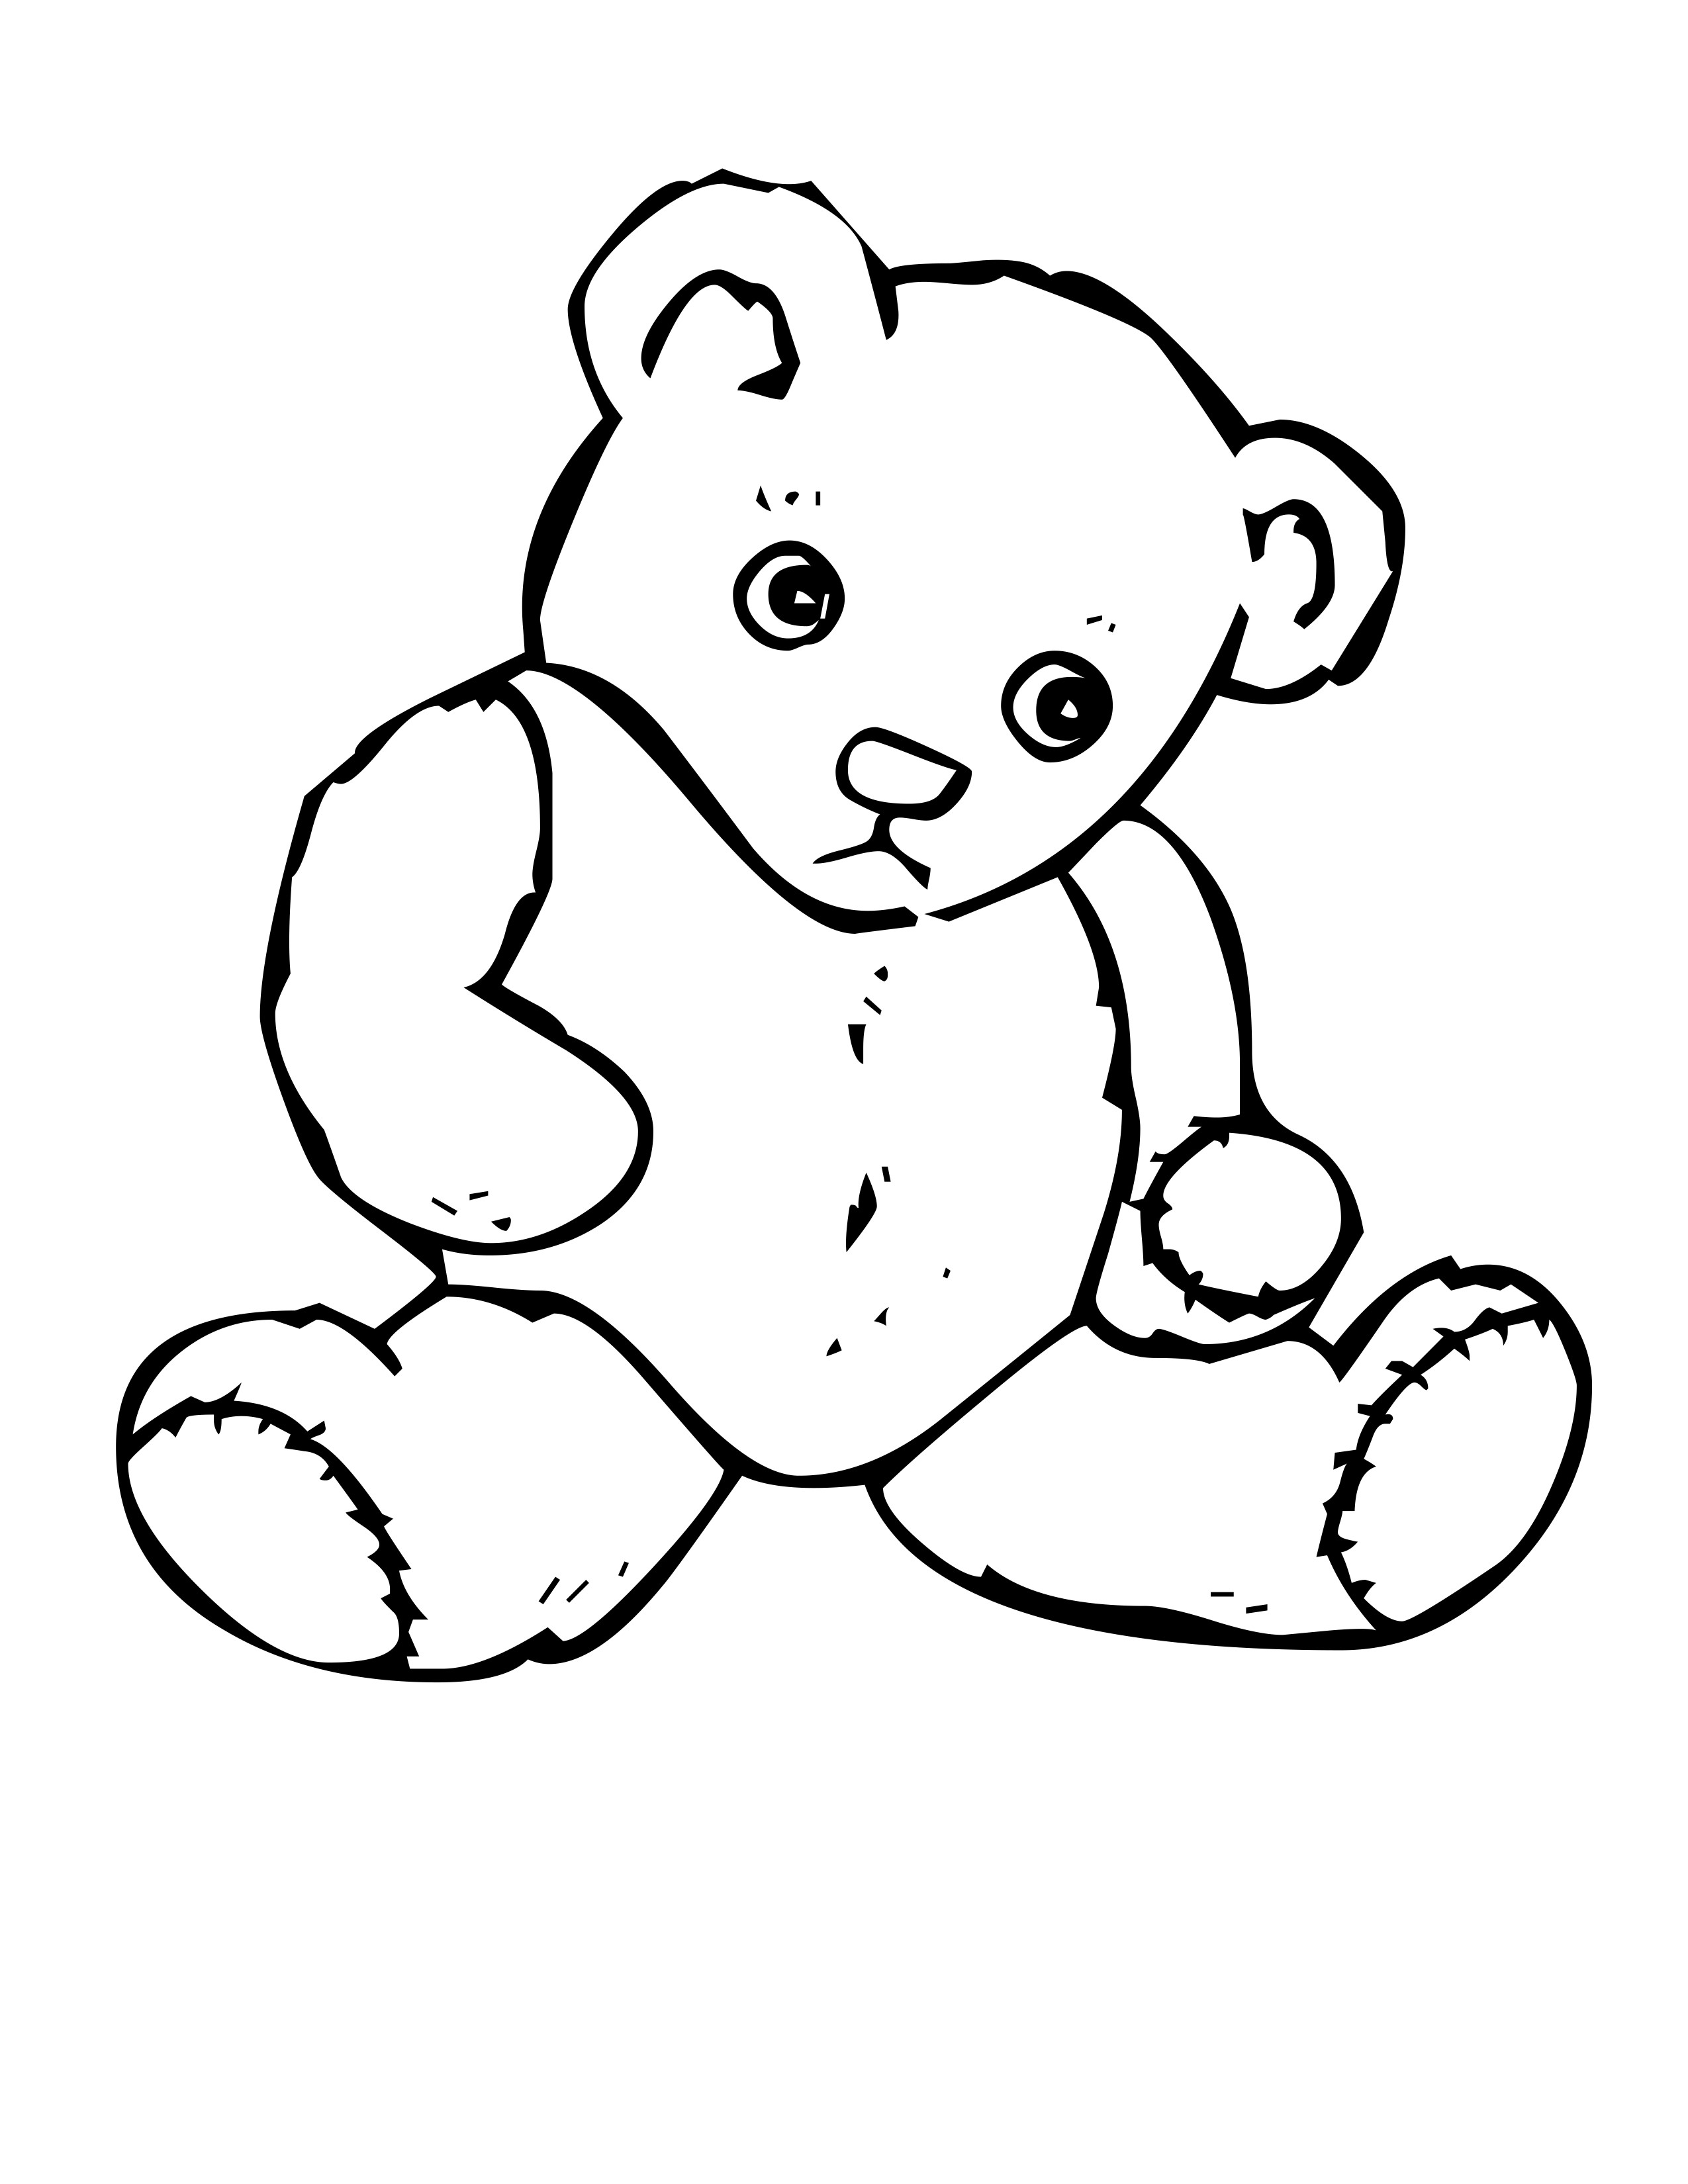 Teddy Bear Christmas Sleigh Coloring Pages - Worksheet & Coloring Pages